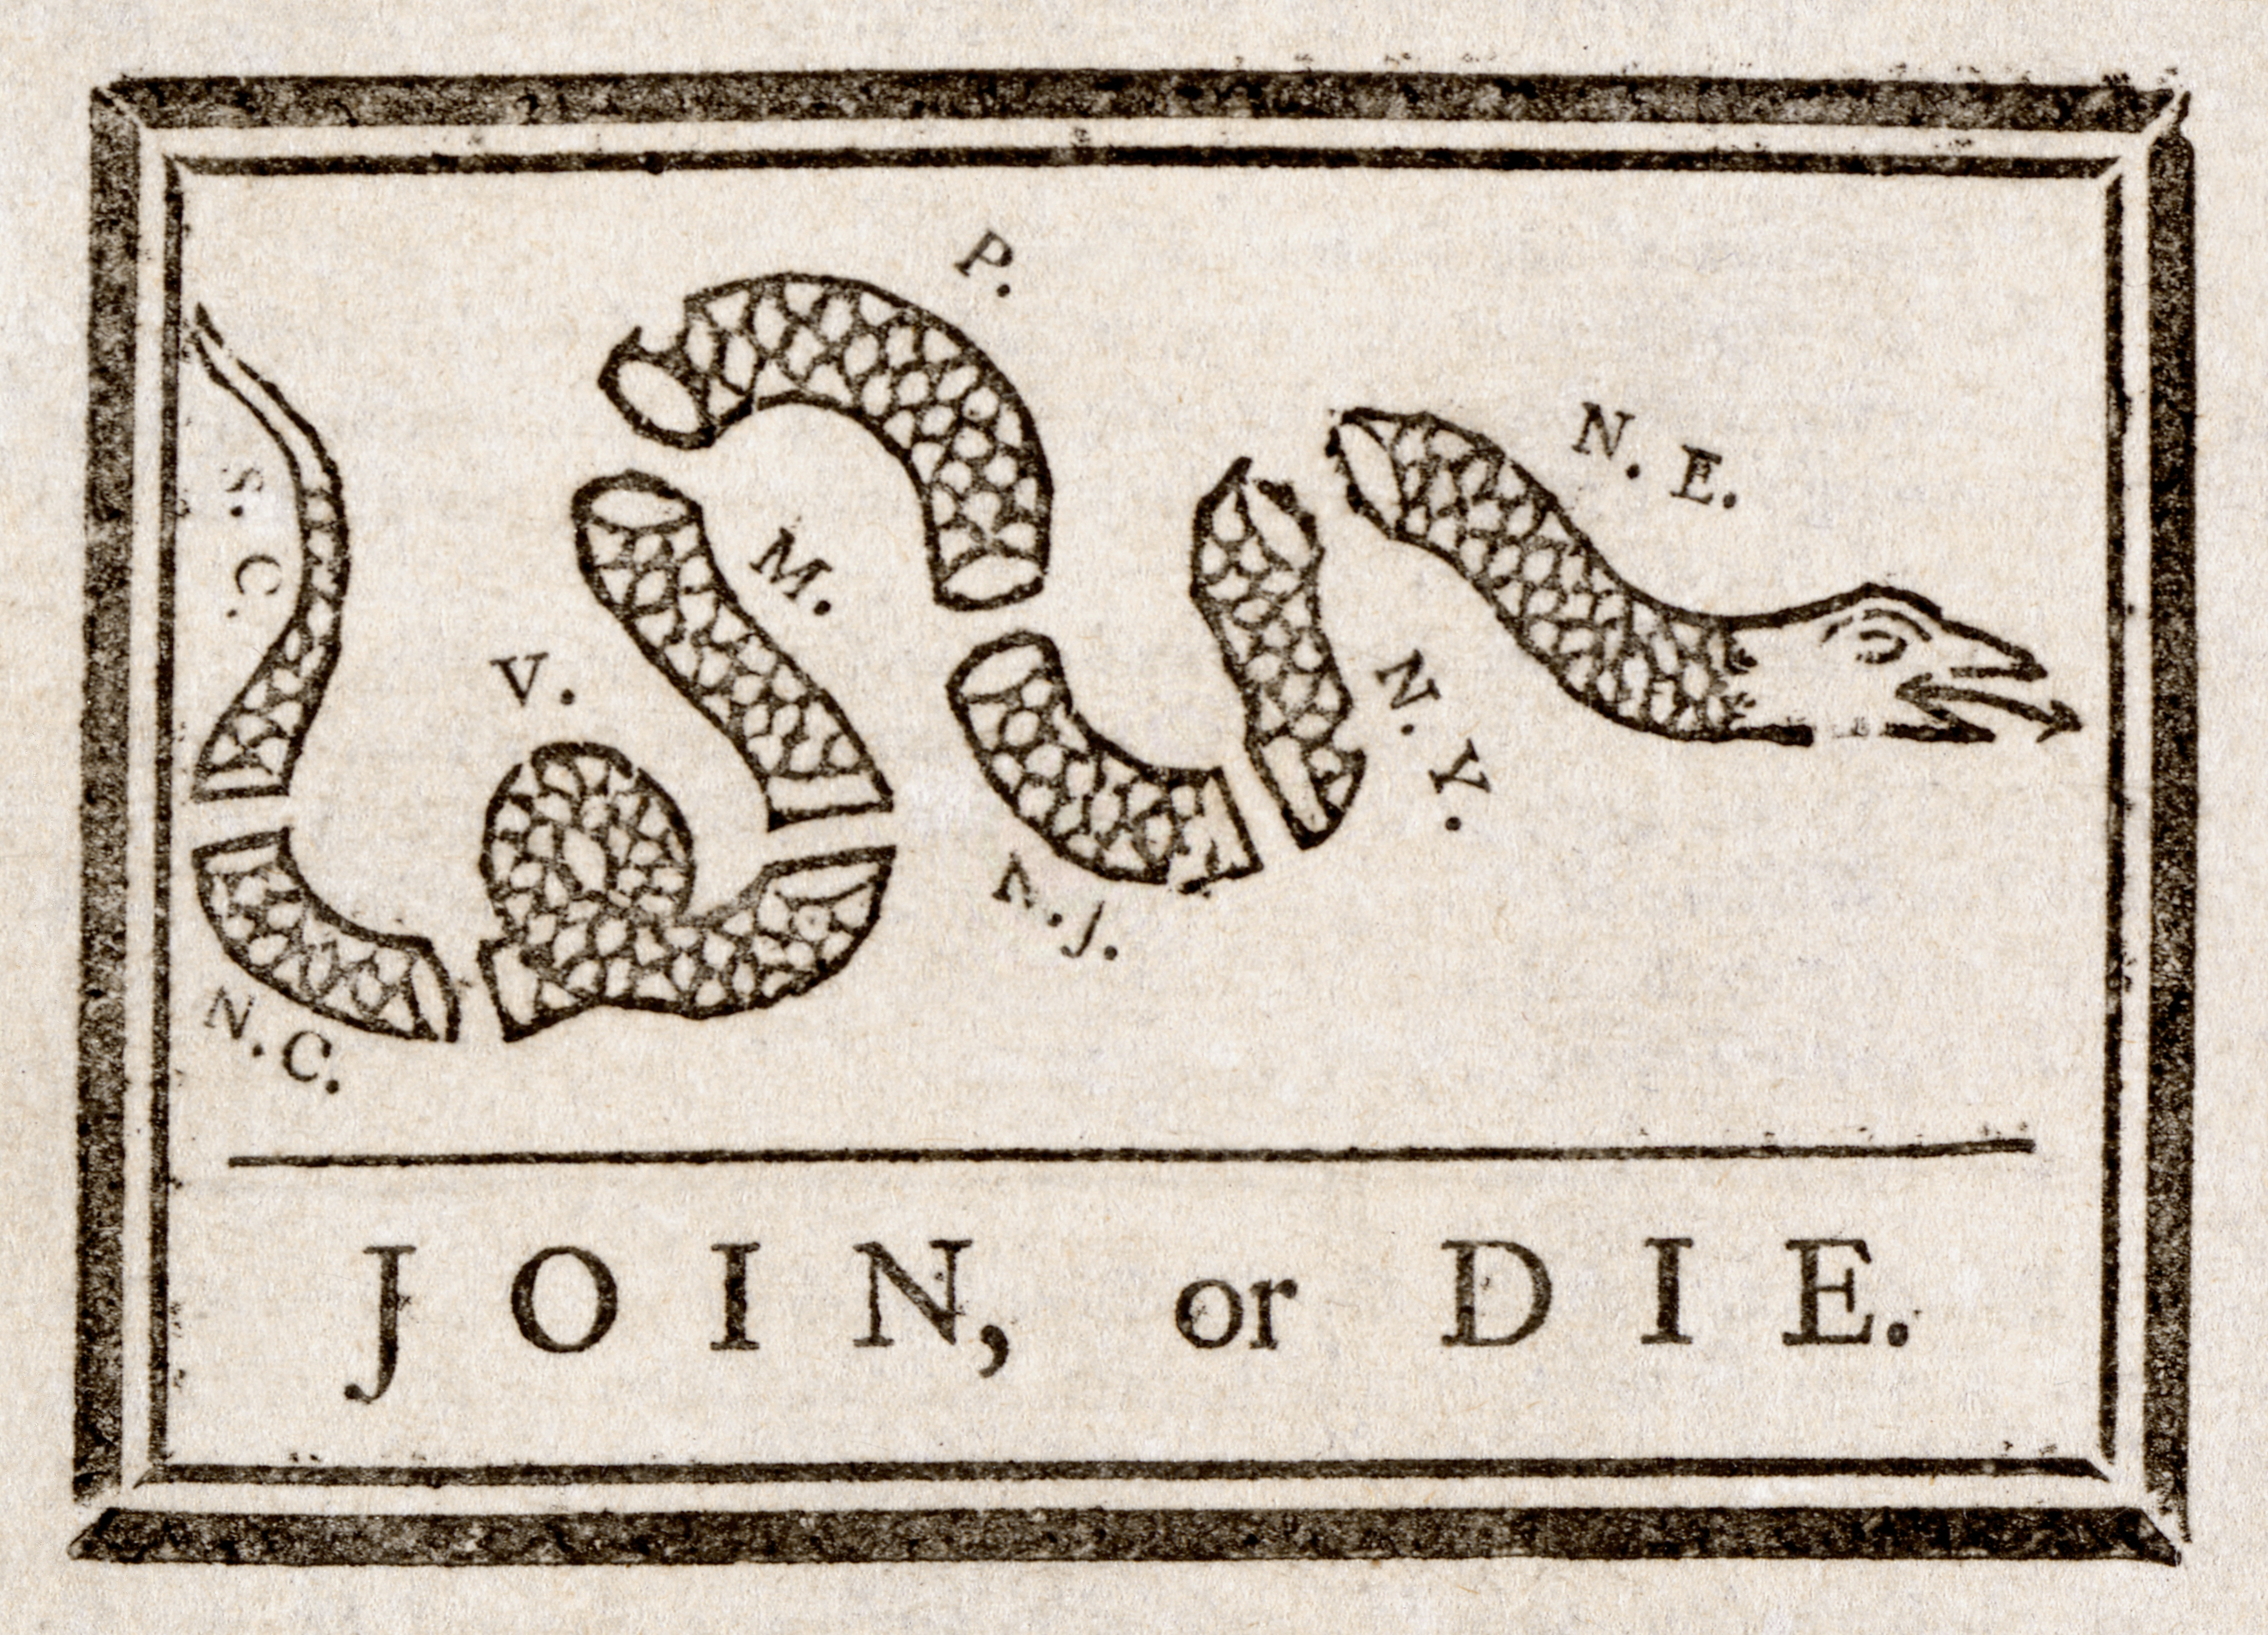 JOIN, or DIE.